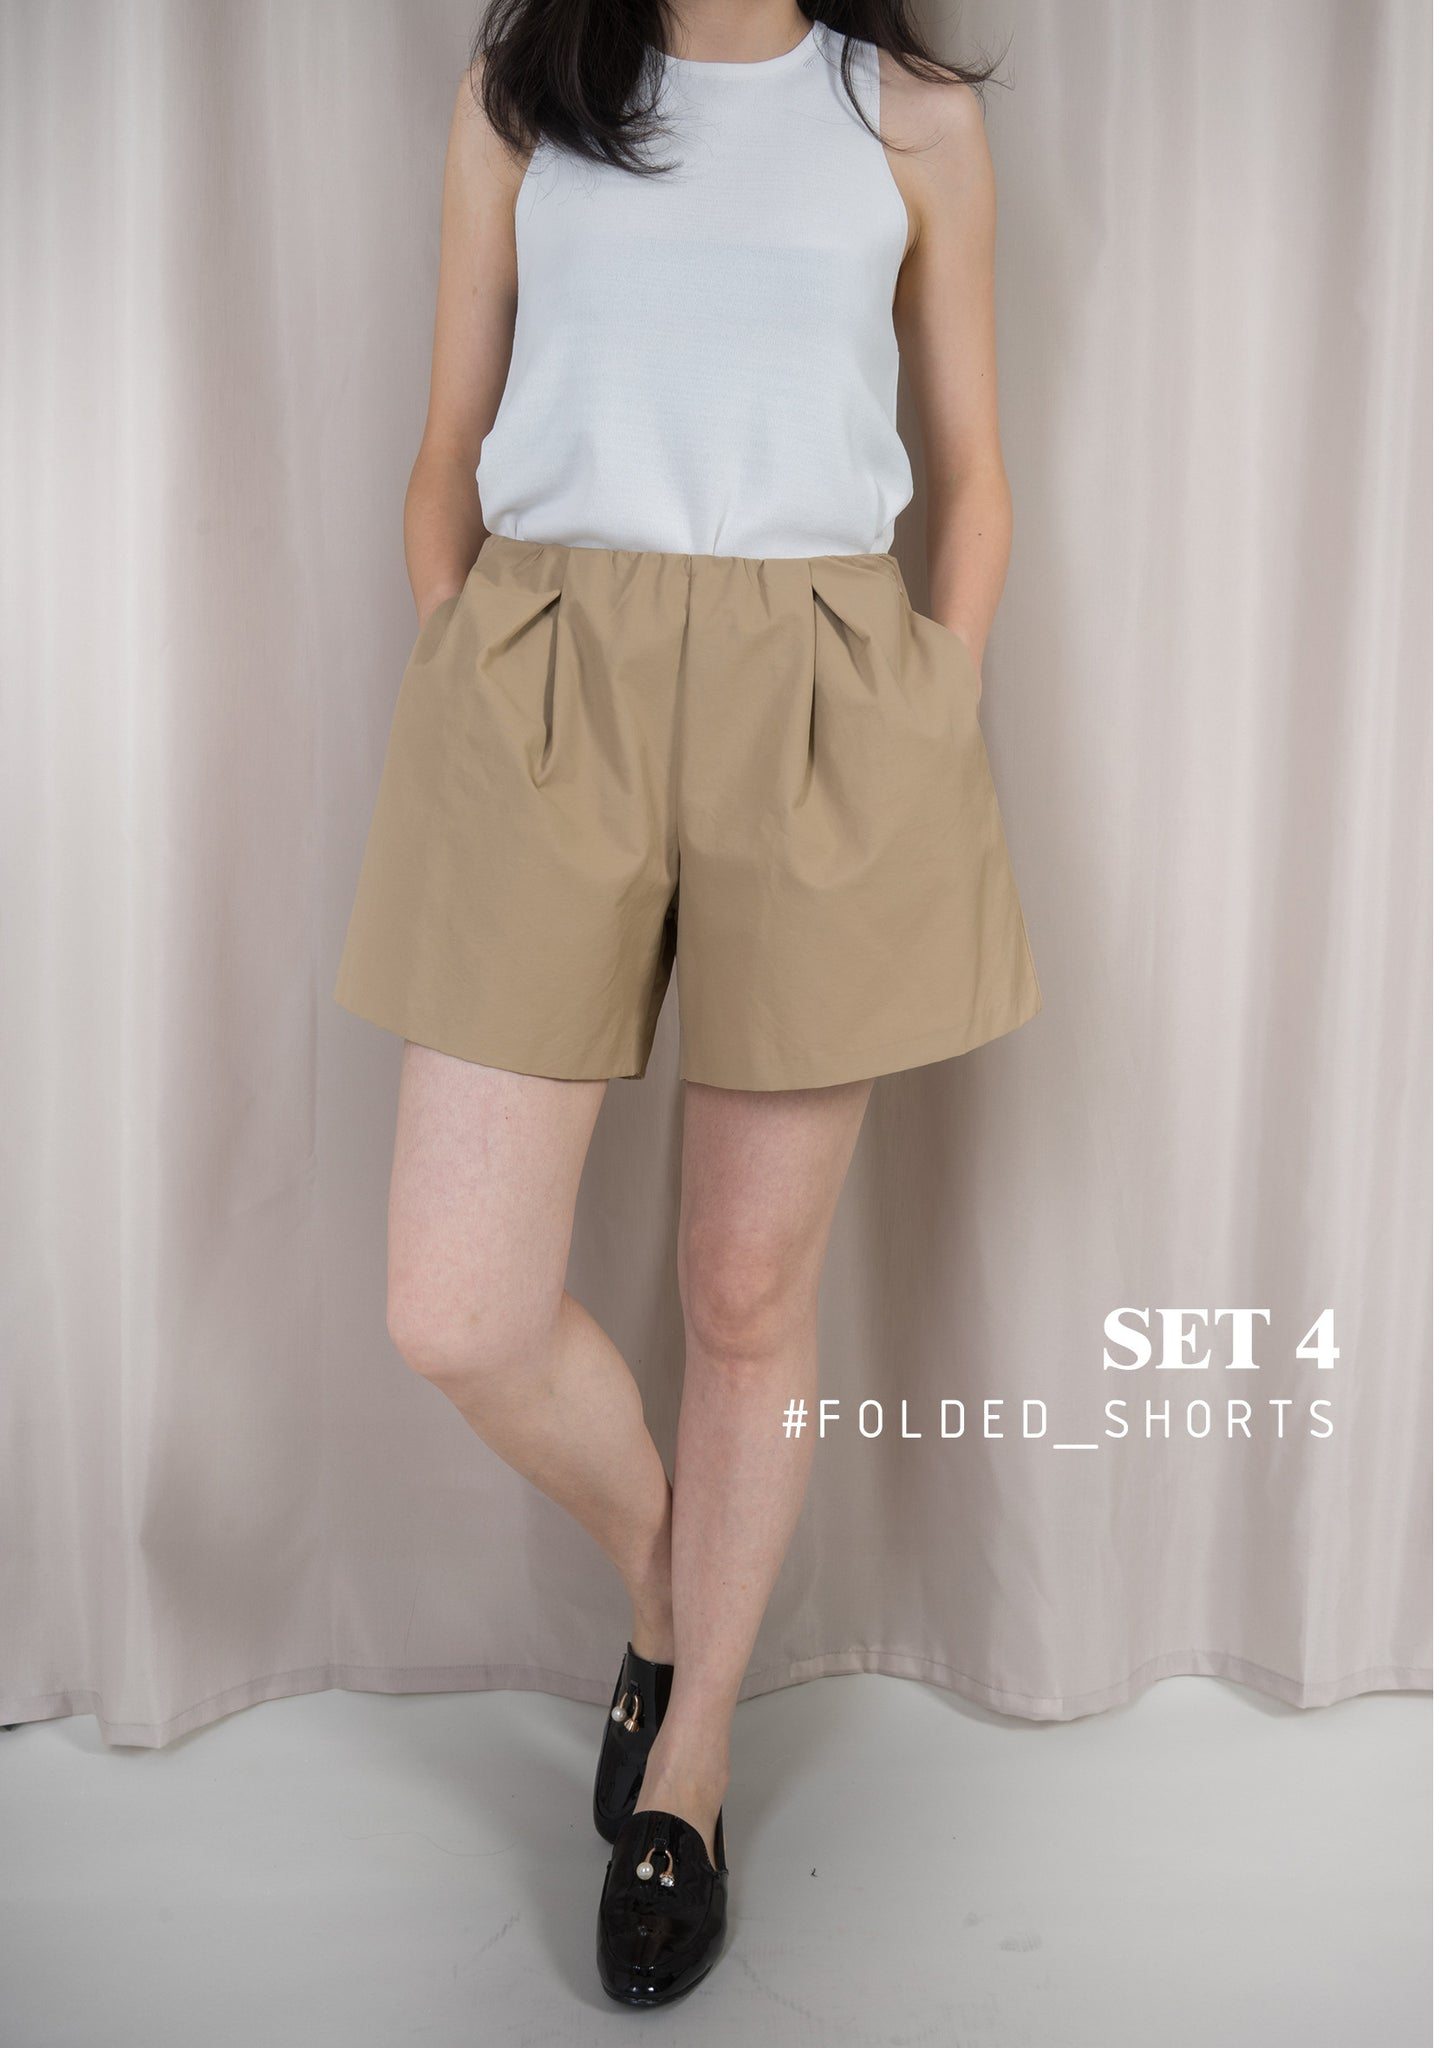 Folded Shorts Set 4